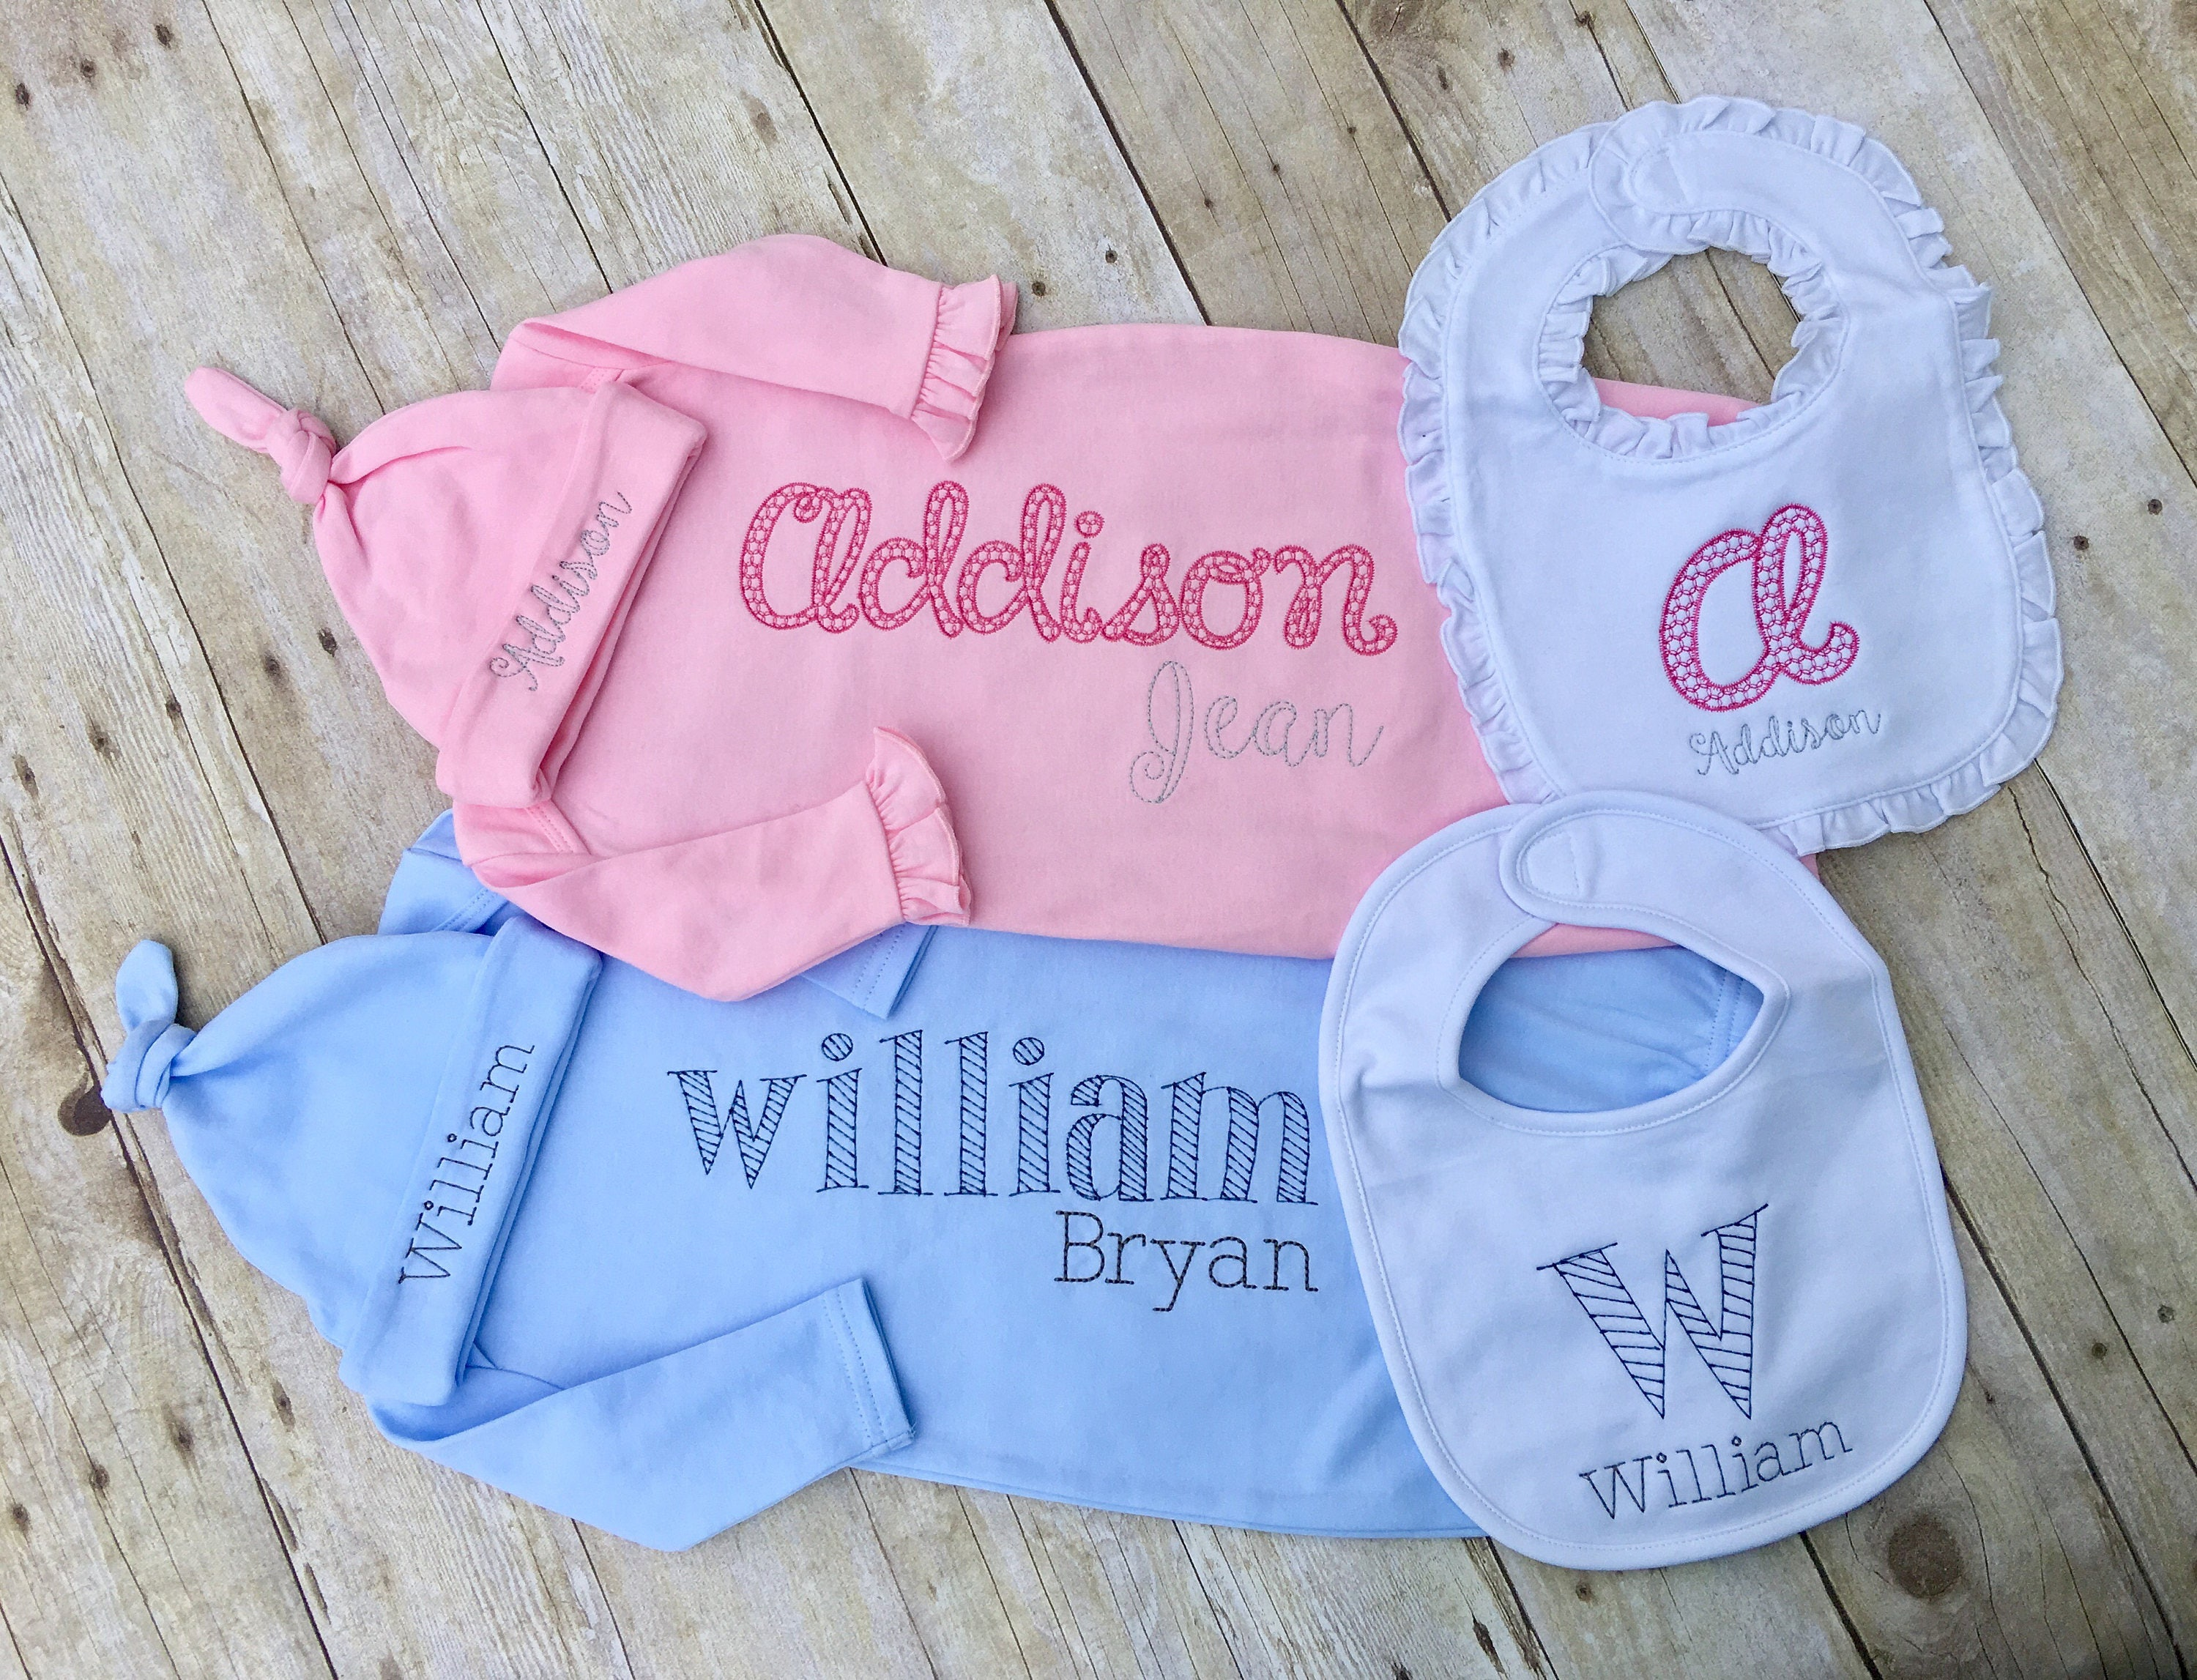 Baby name gown Twin baby clothes gender reveal birth   Etsy